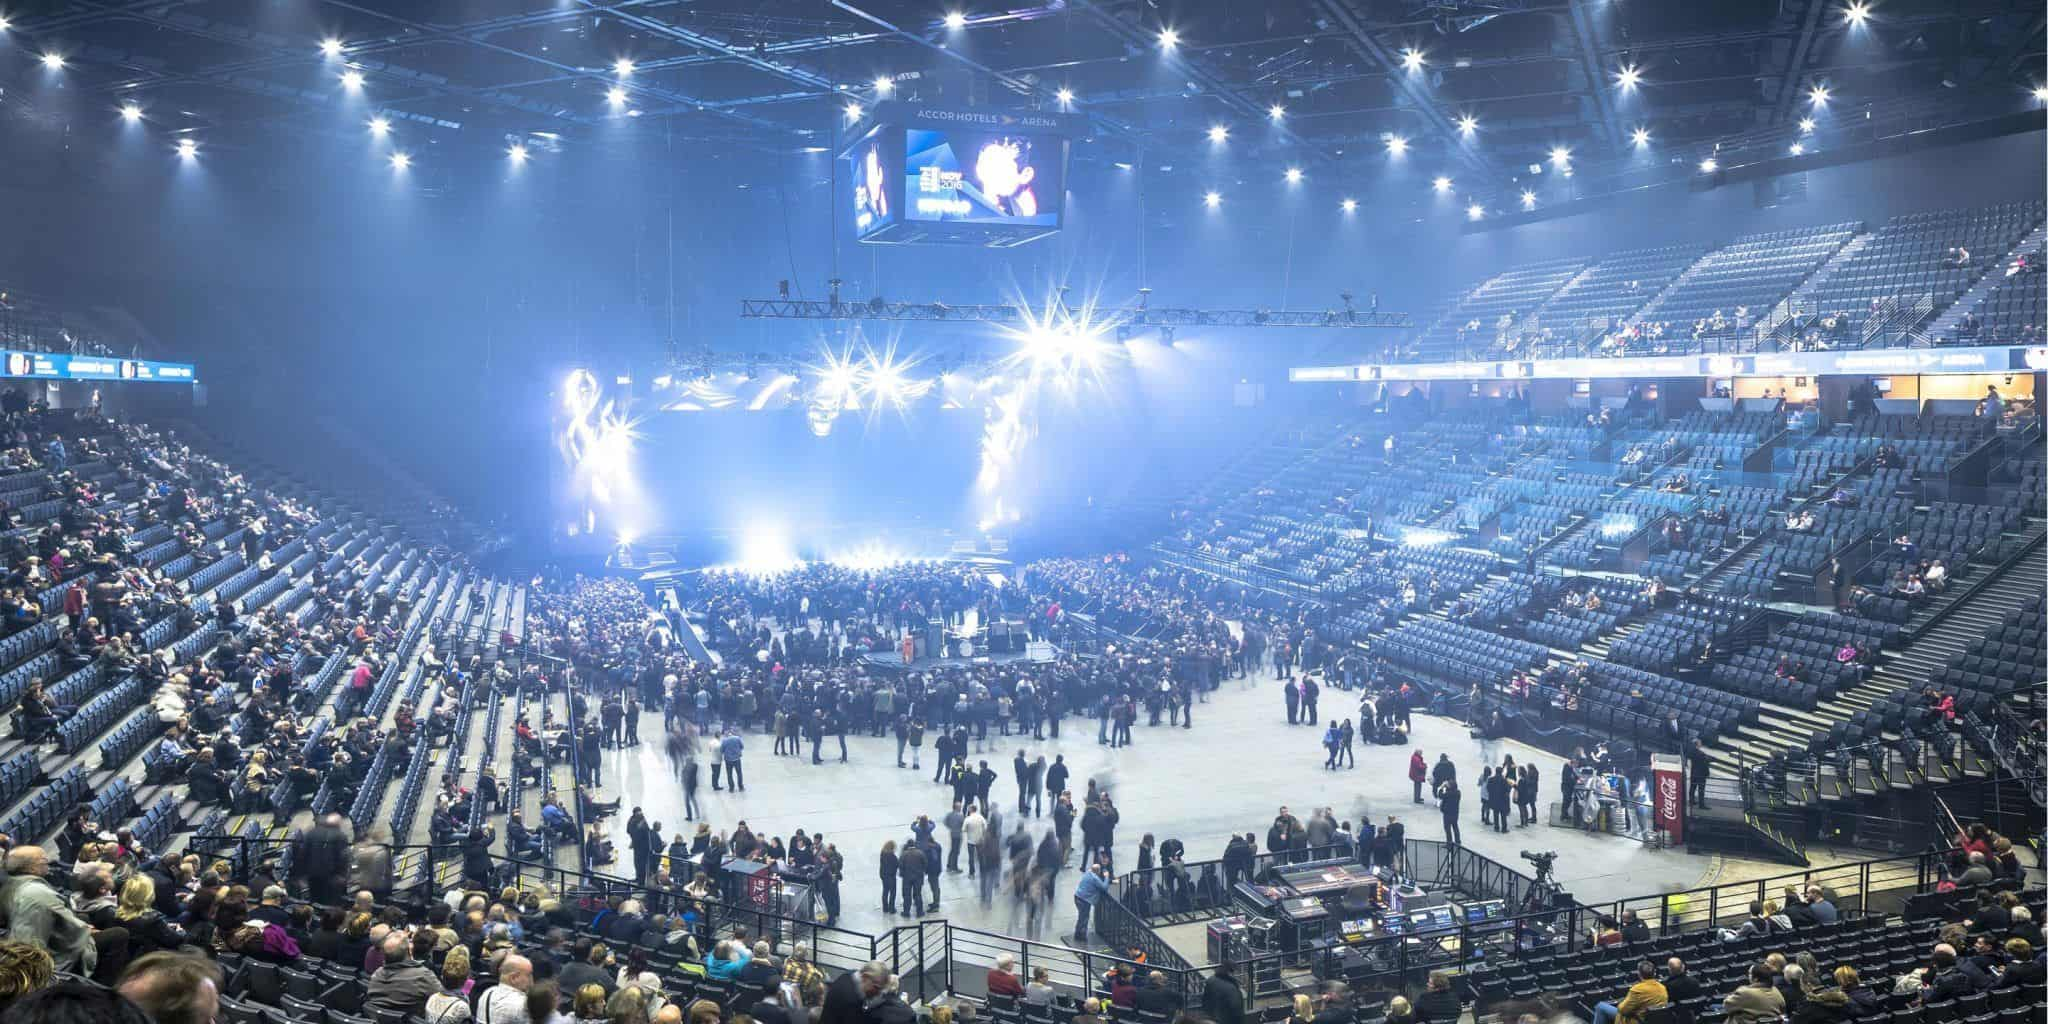 Accorhotels Arena - DVVD